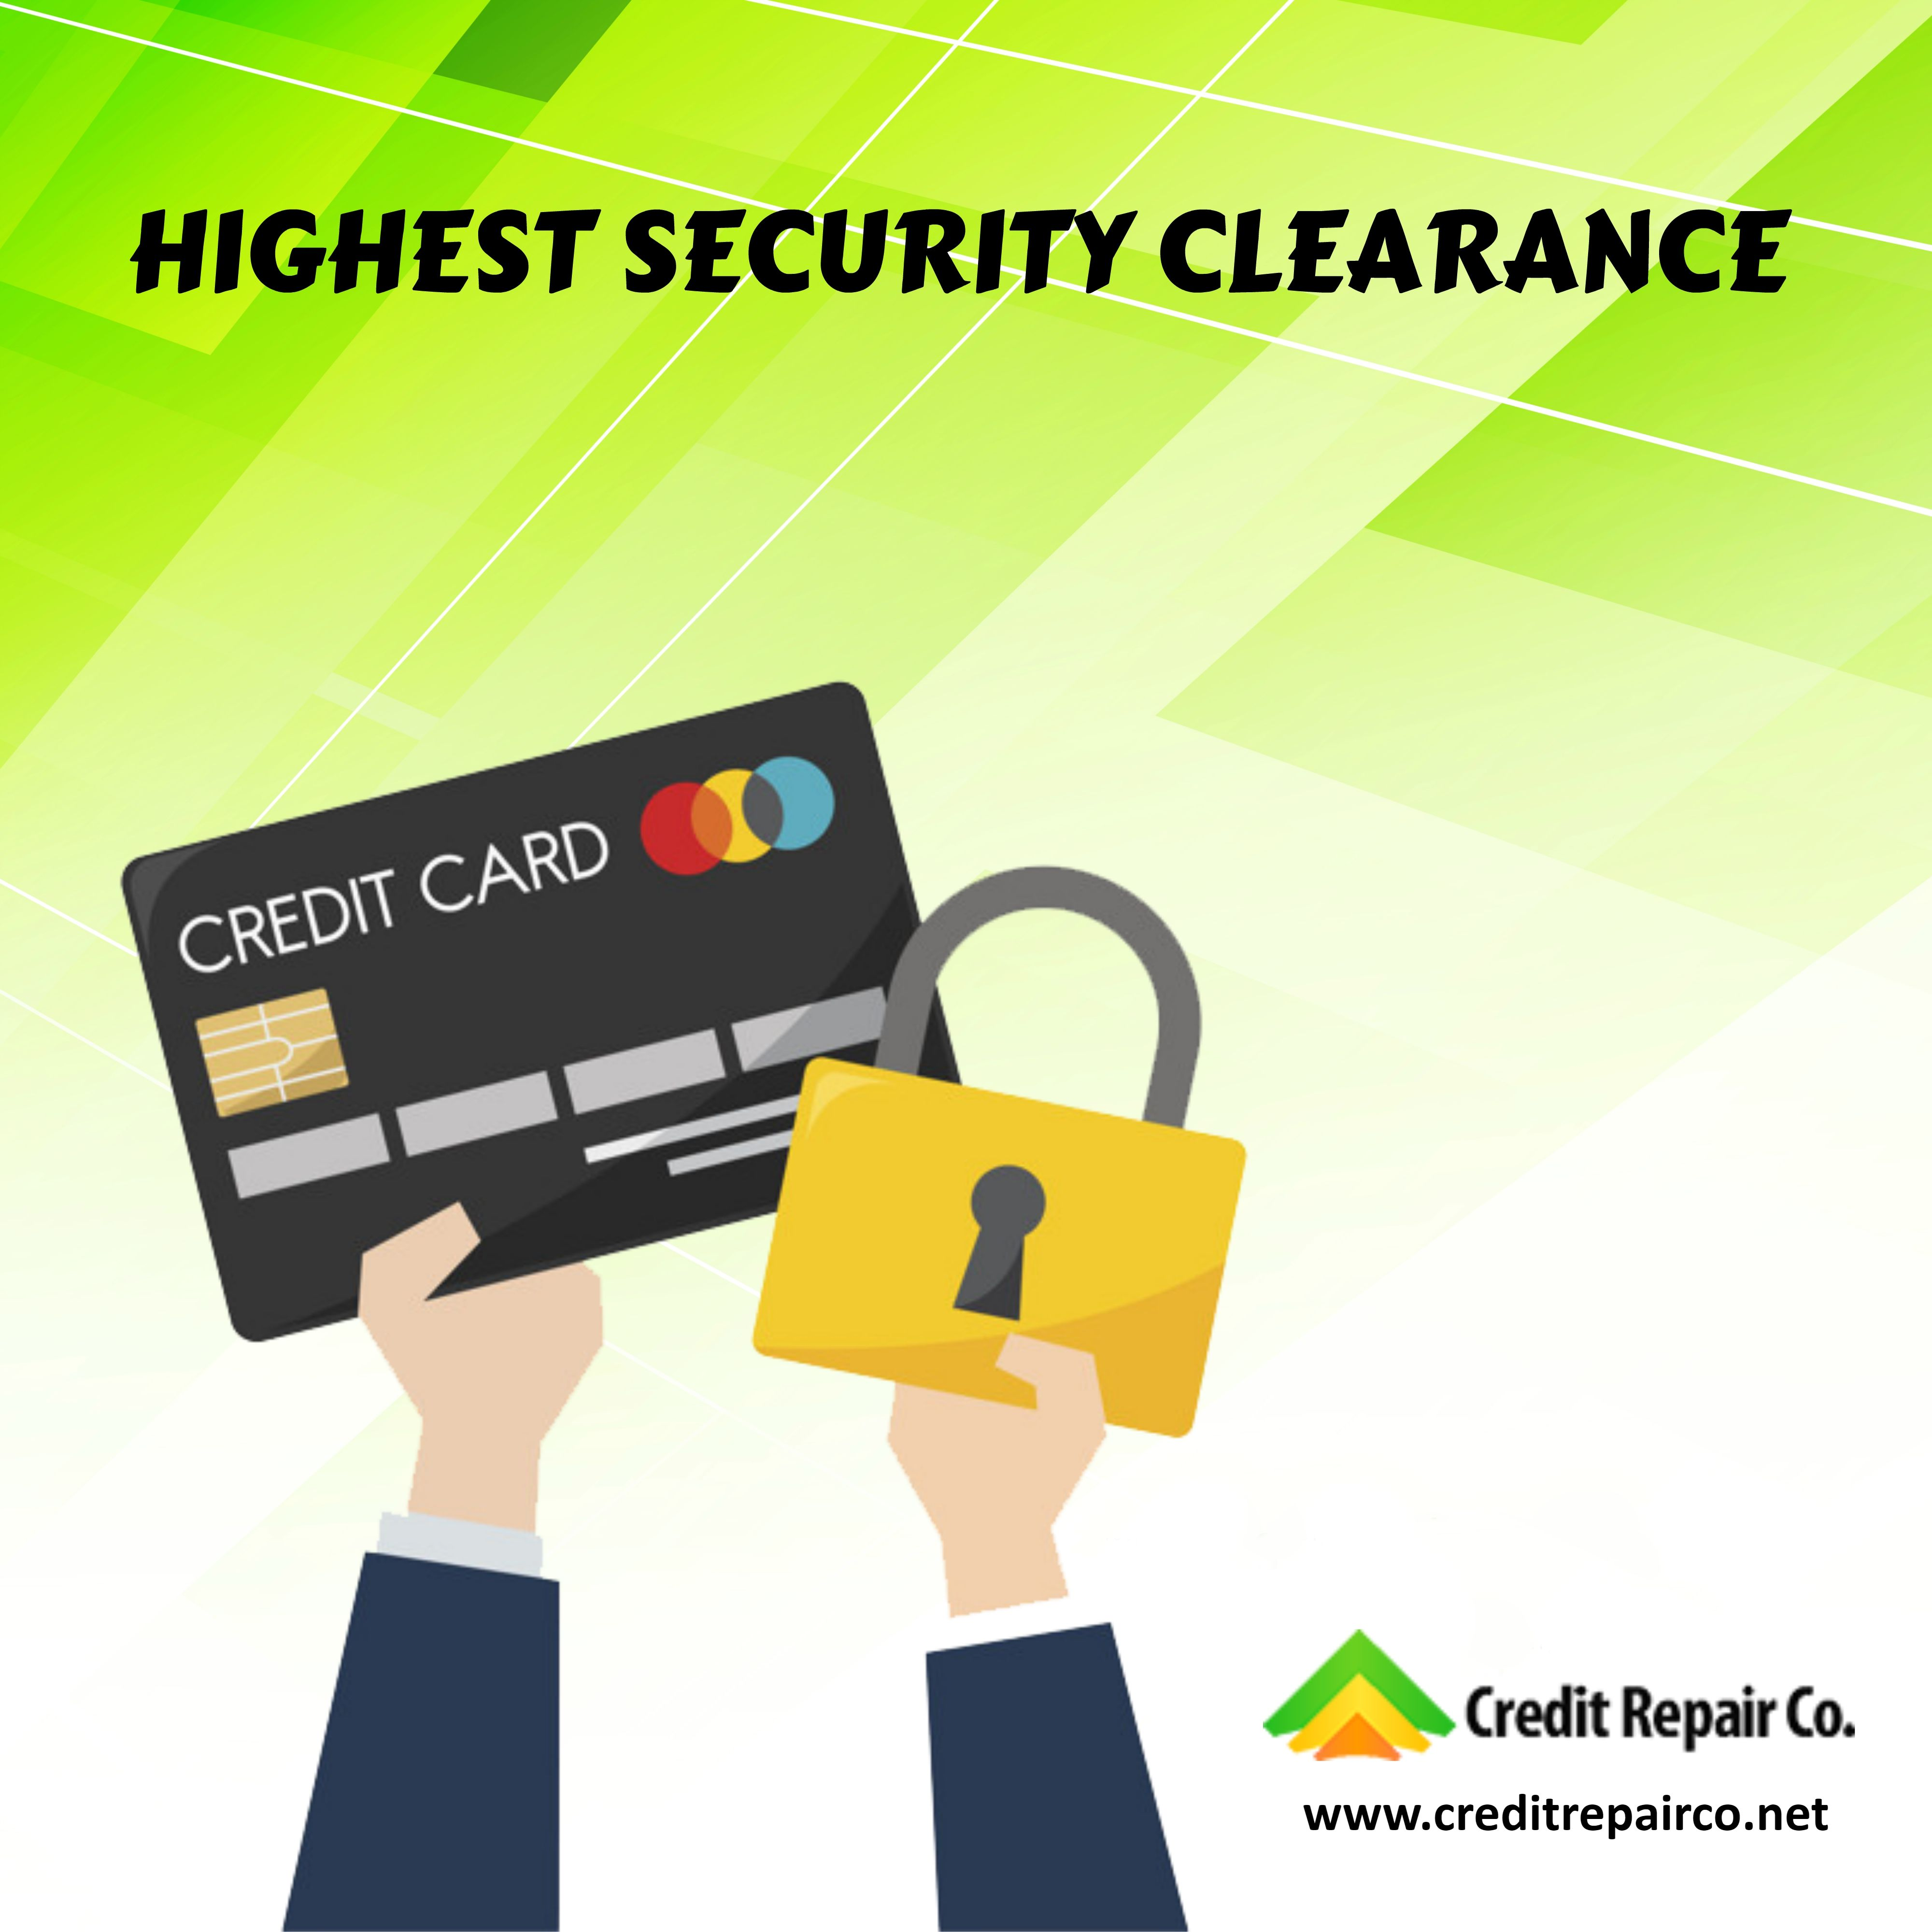 Our Processors Have The Highest Security Clearance With E Oscar And Metro 2 Creditrepairco Hardcredit Credit Repair Services Credit Repair How To Fix Credit